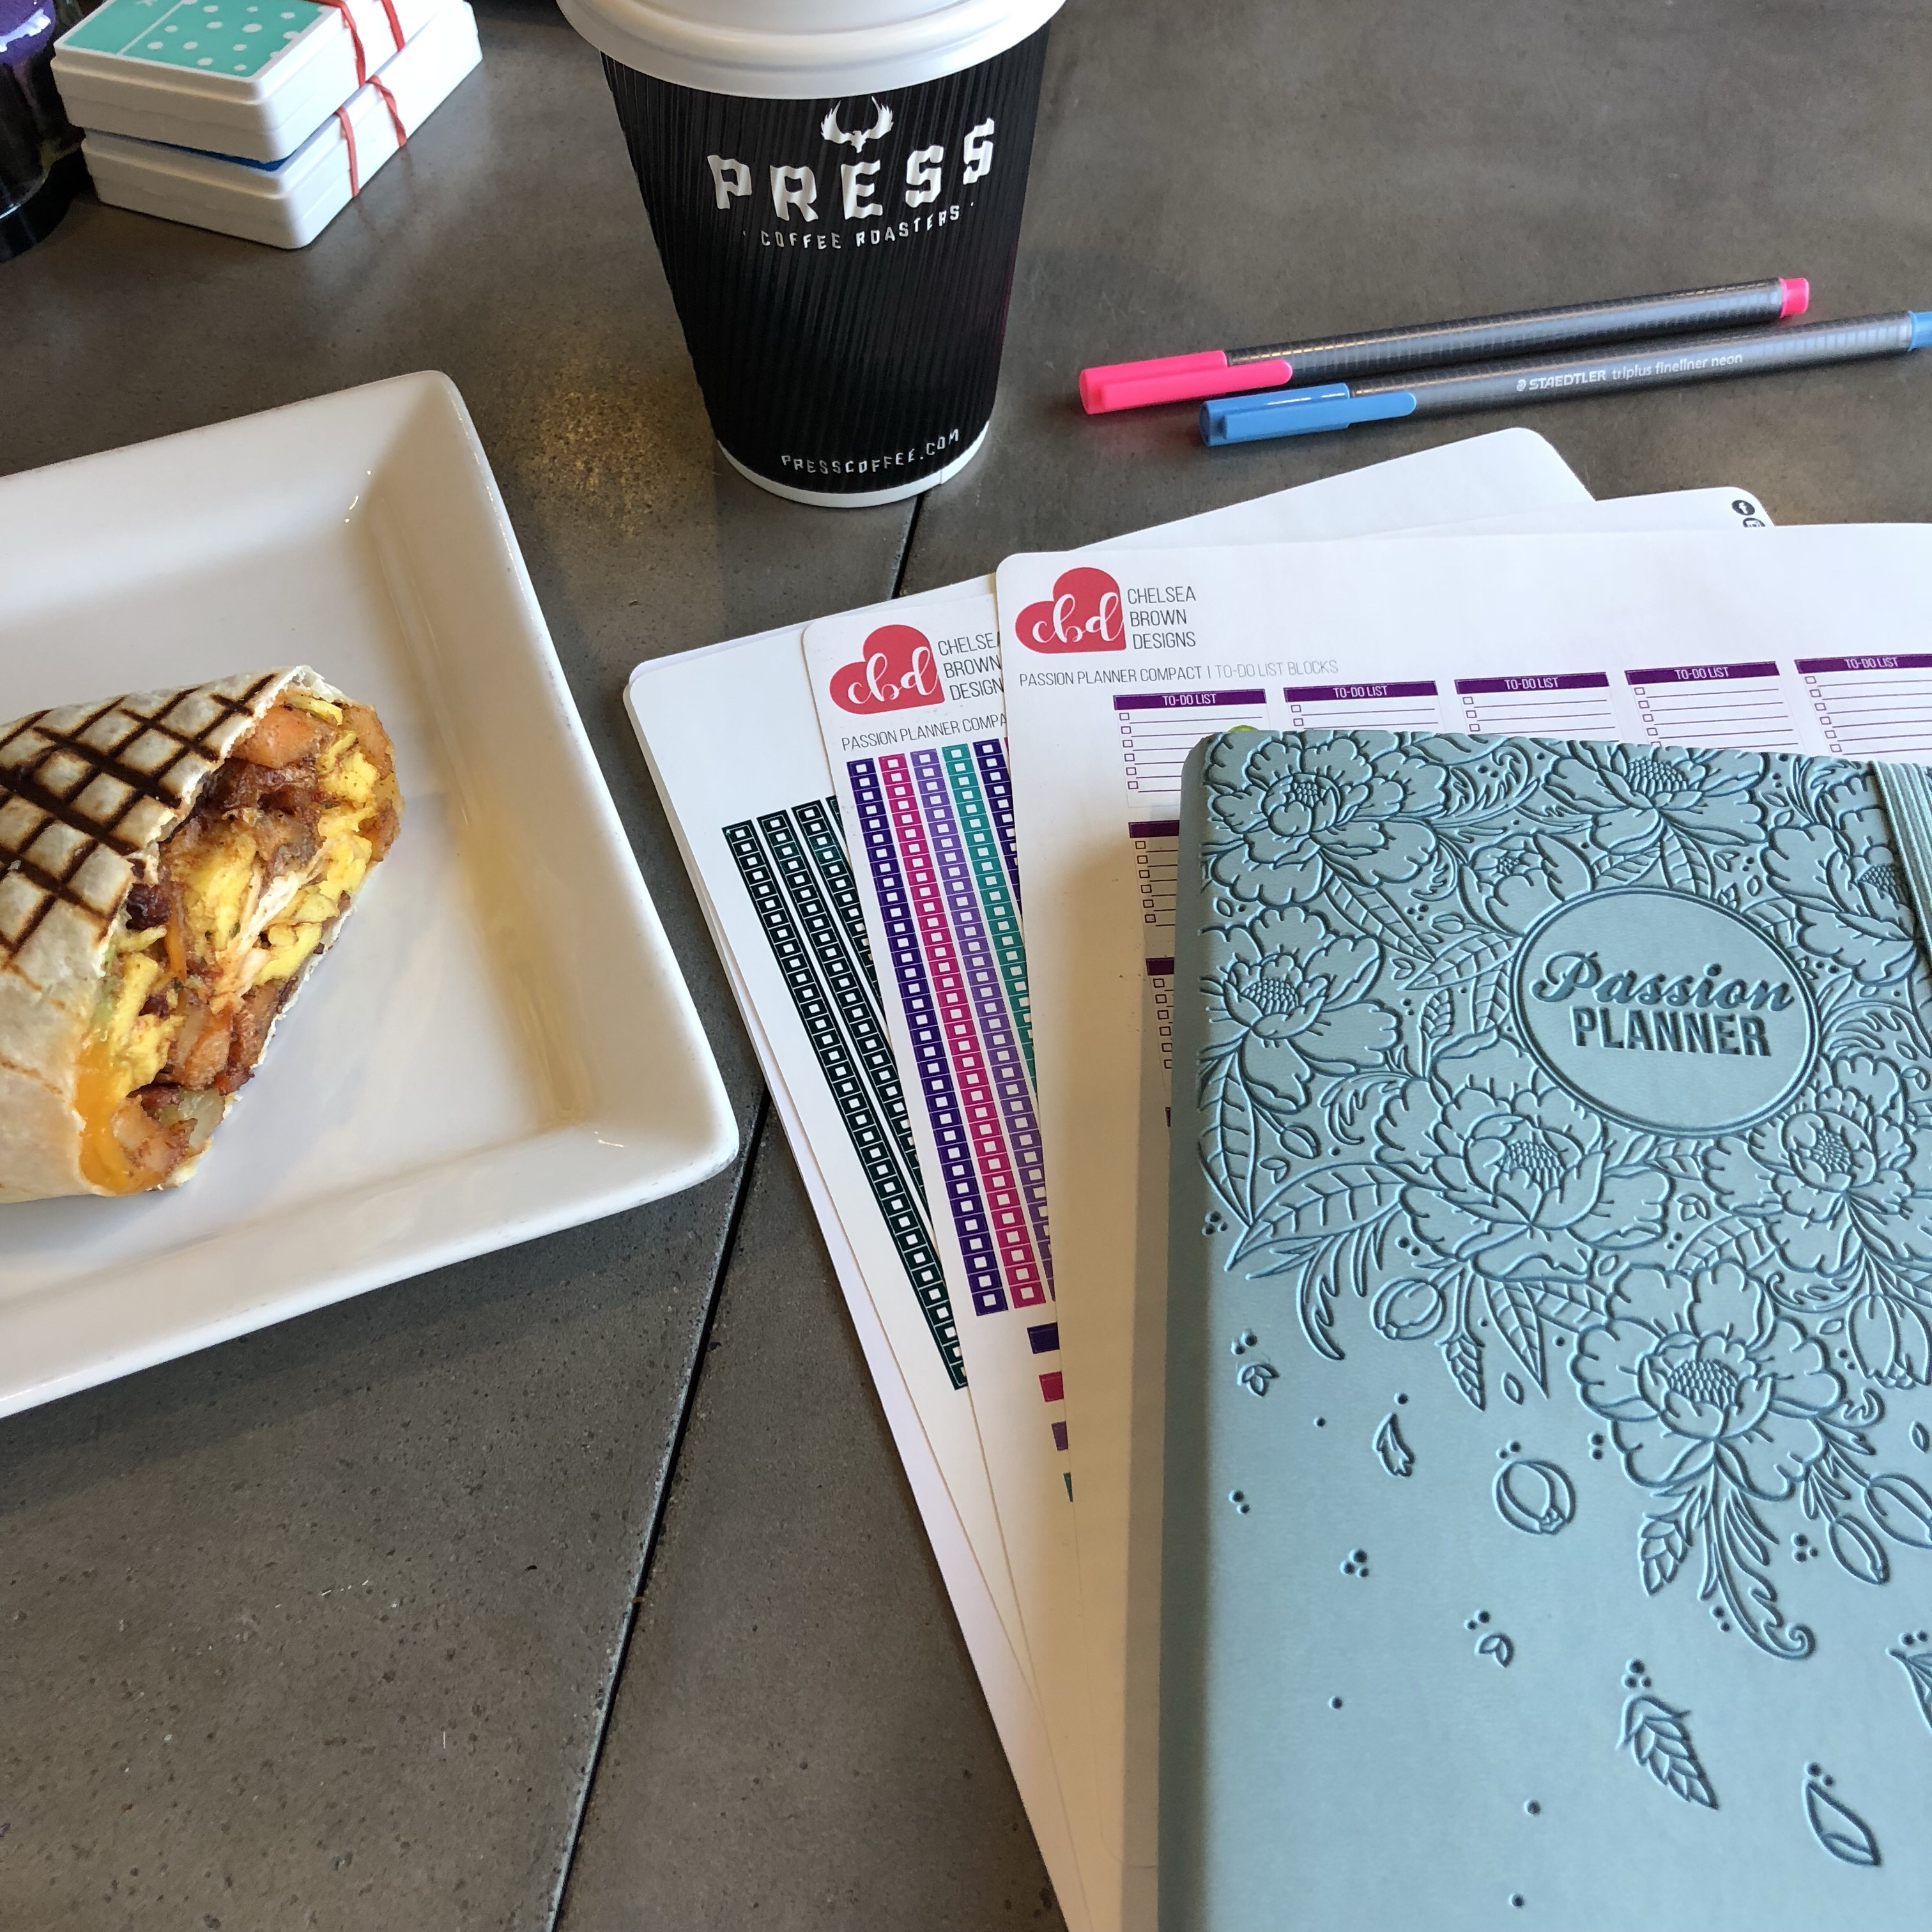 2018 Passion Planner, Chelsea Brown Stickers, pens, and Coffee and burrito